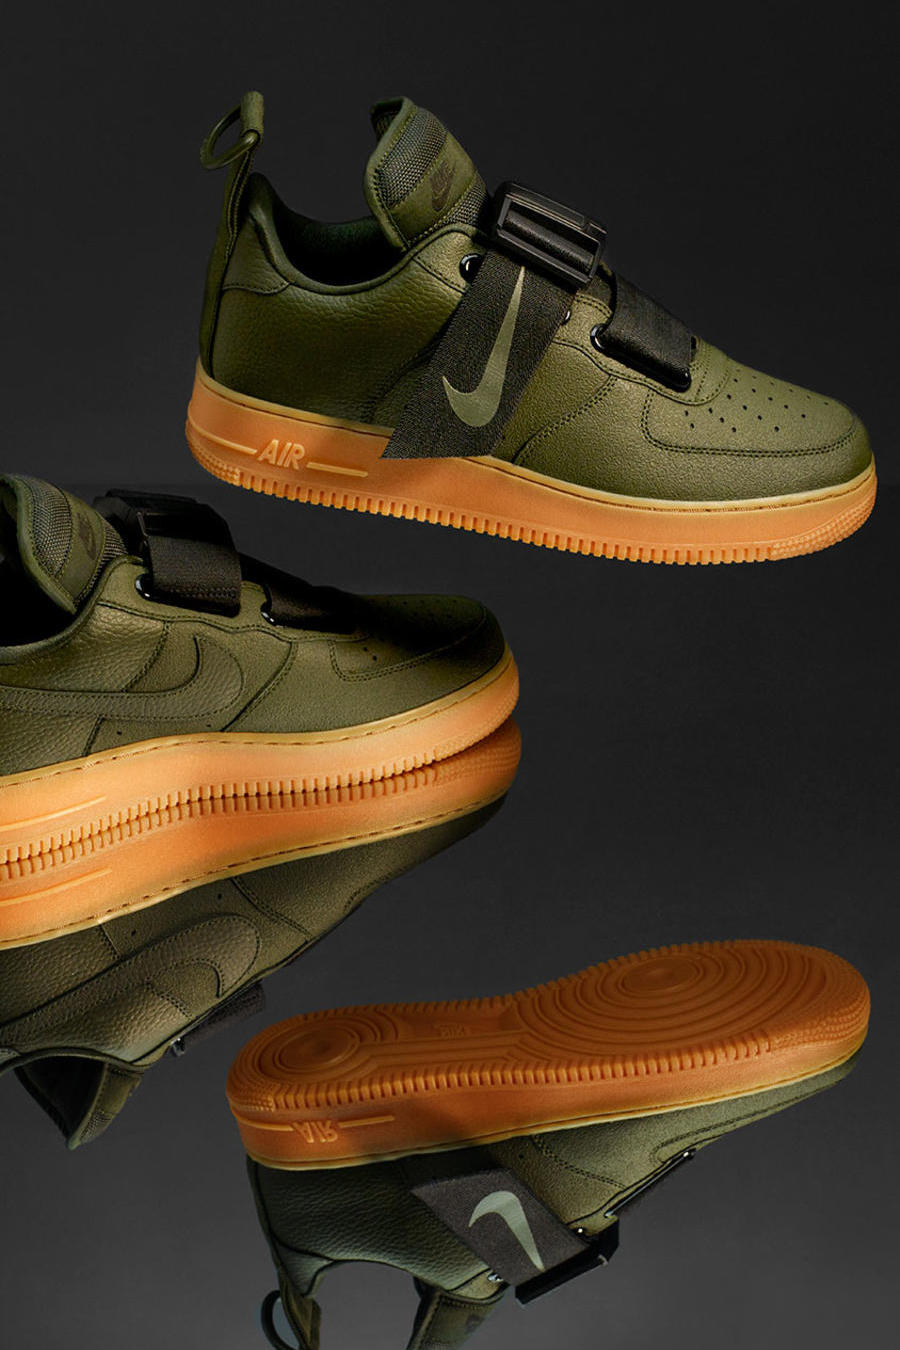 Nike Launches Air Force 1 Holiday Pack NBA Air Force 1 AF1 Rebel XX 270 Utility